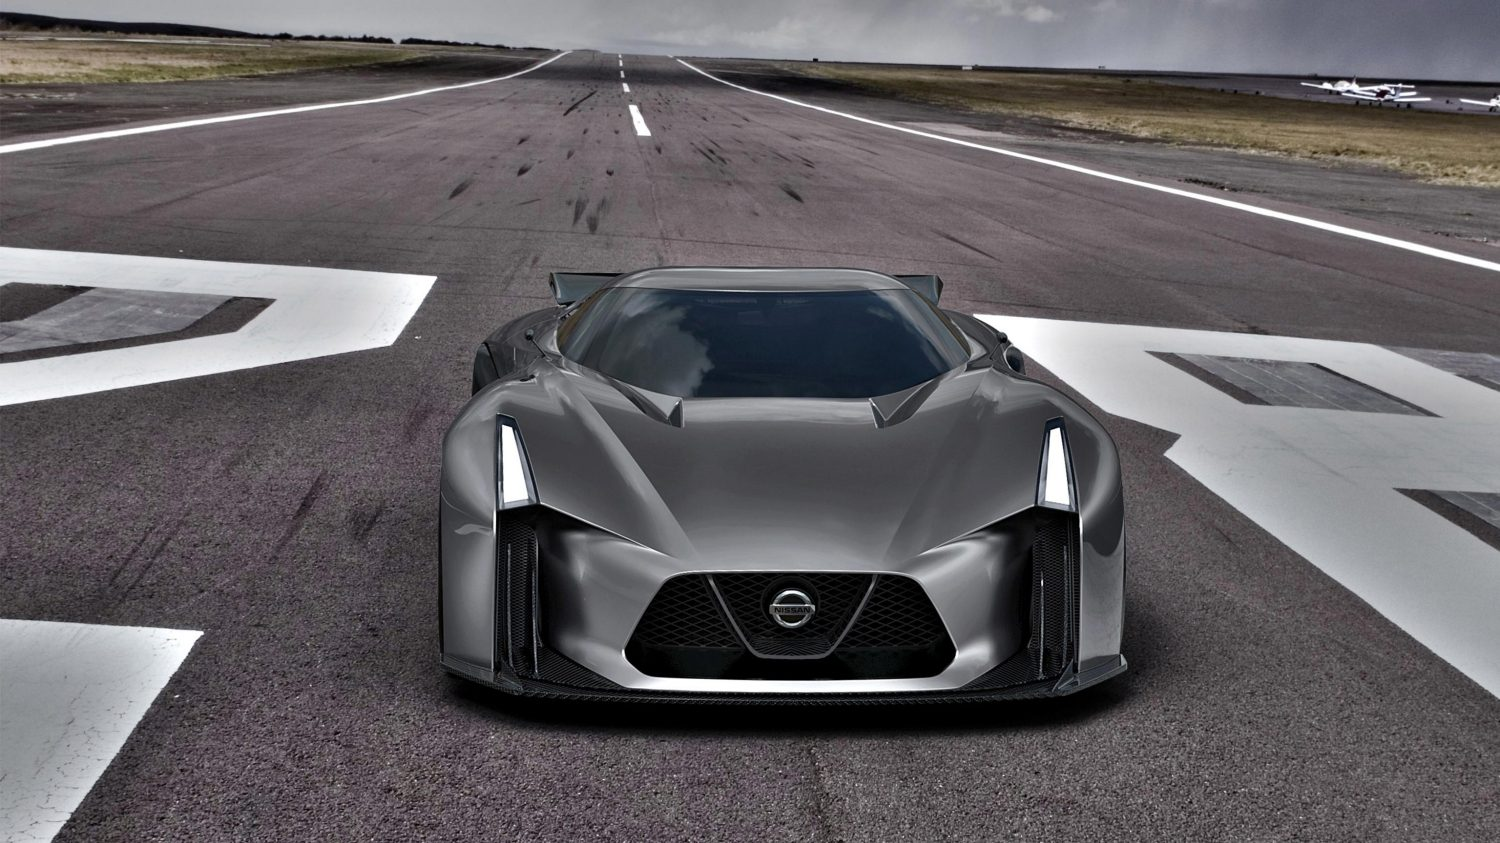 Nissan Concept 2020 Vision Gran Turismo high front on airstrip